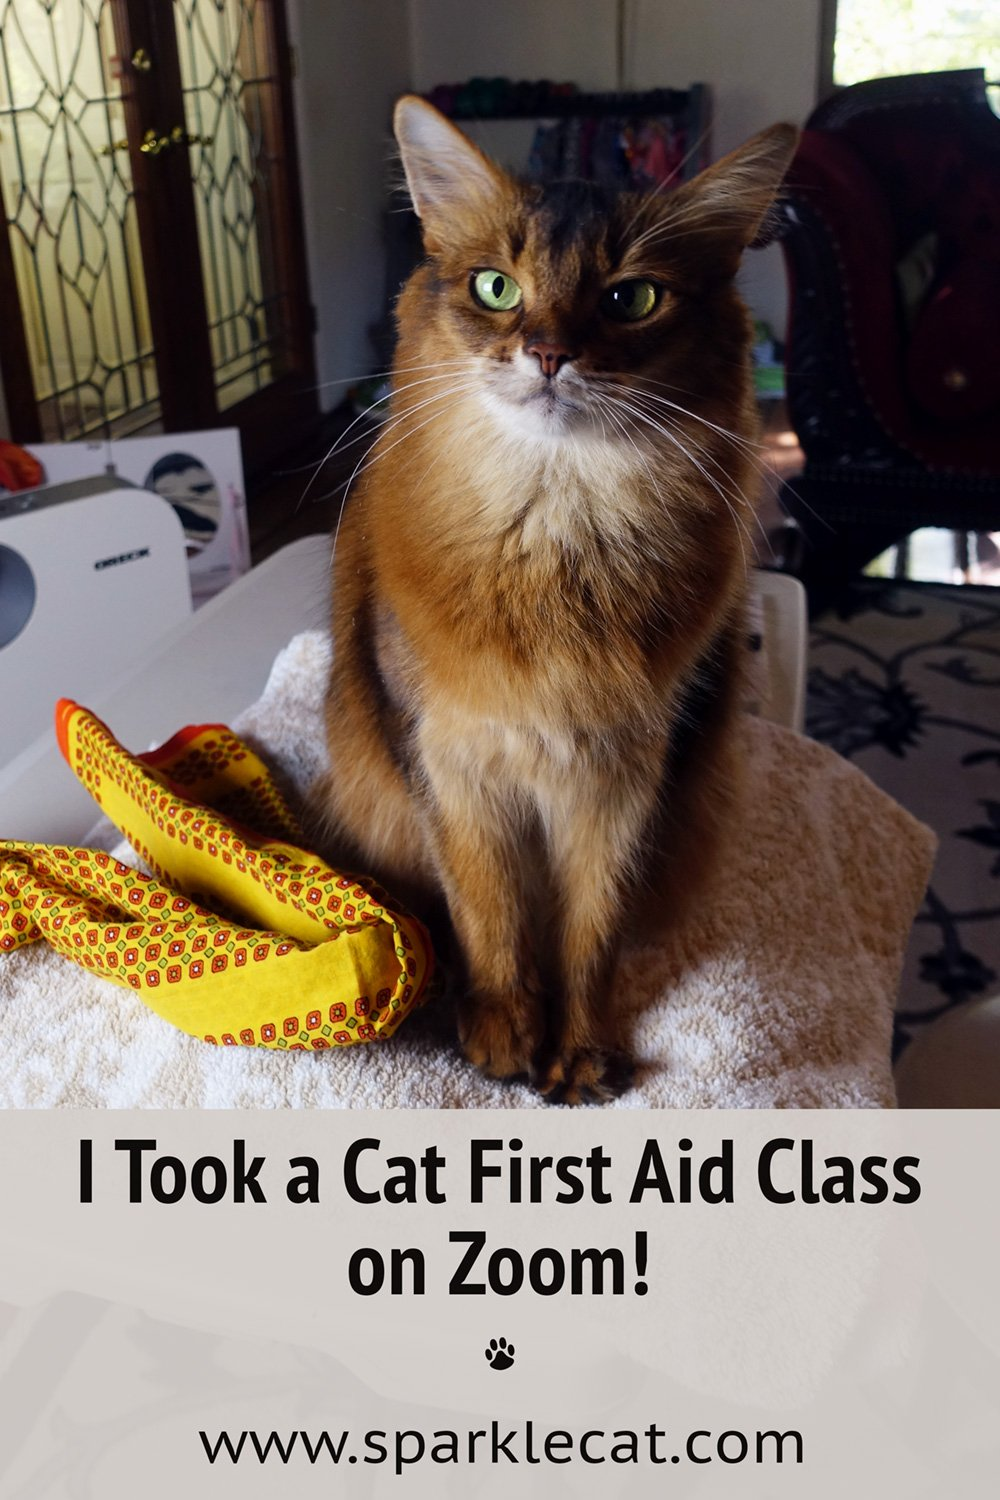 My Human and I Took a Cat First Aid Class on Zoom!